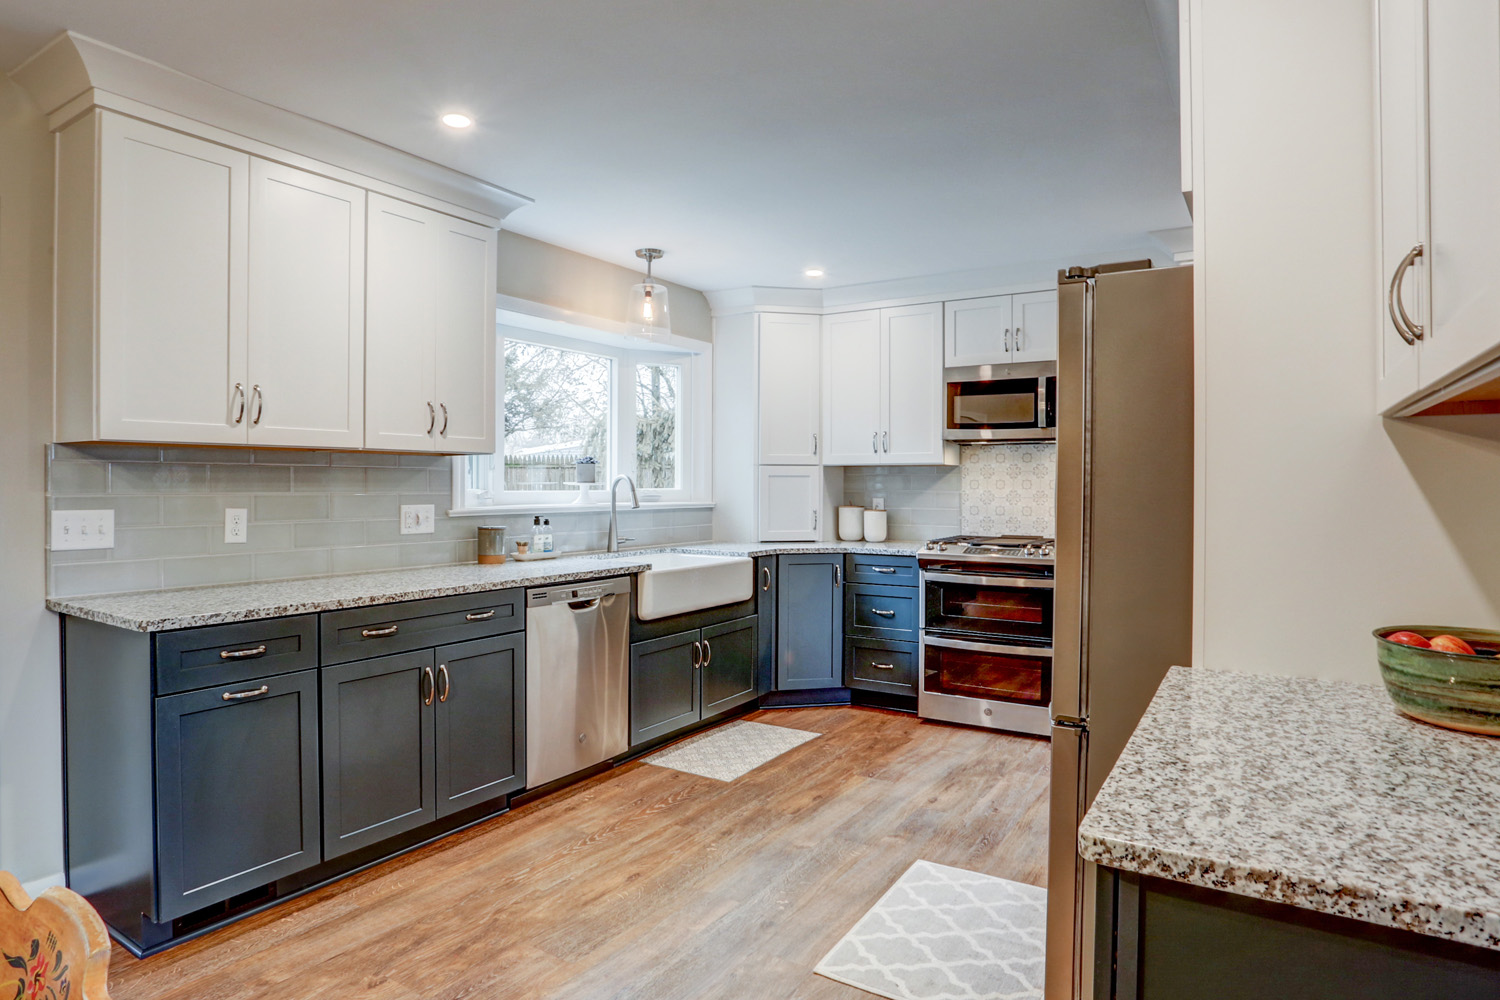 White and Blue Cabinets in Warwick Township Kitchen Remodel